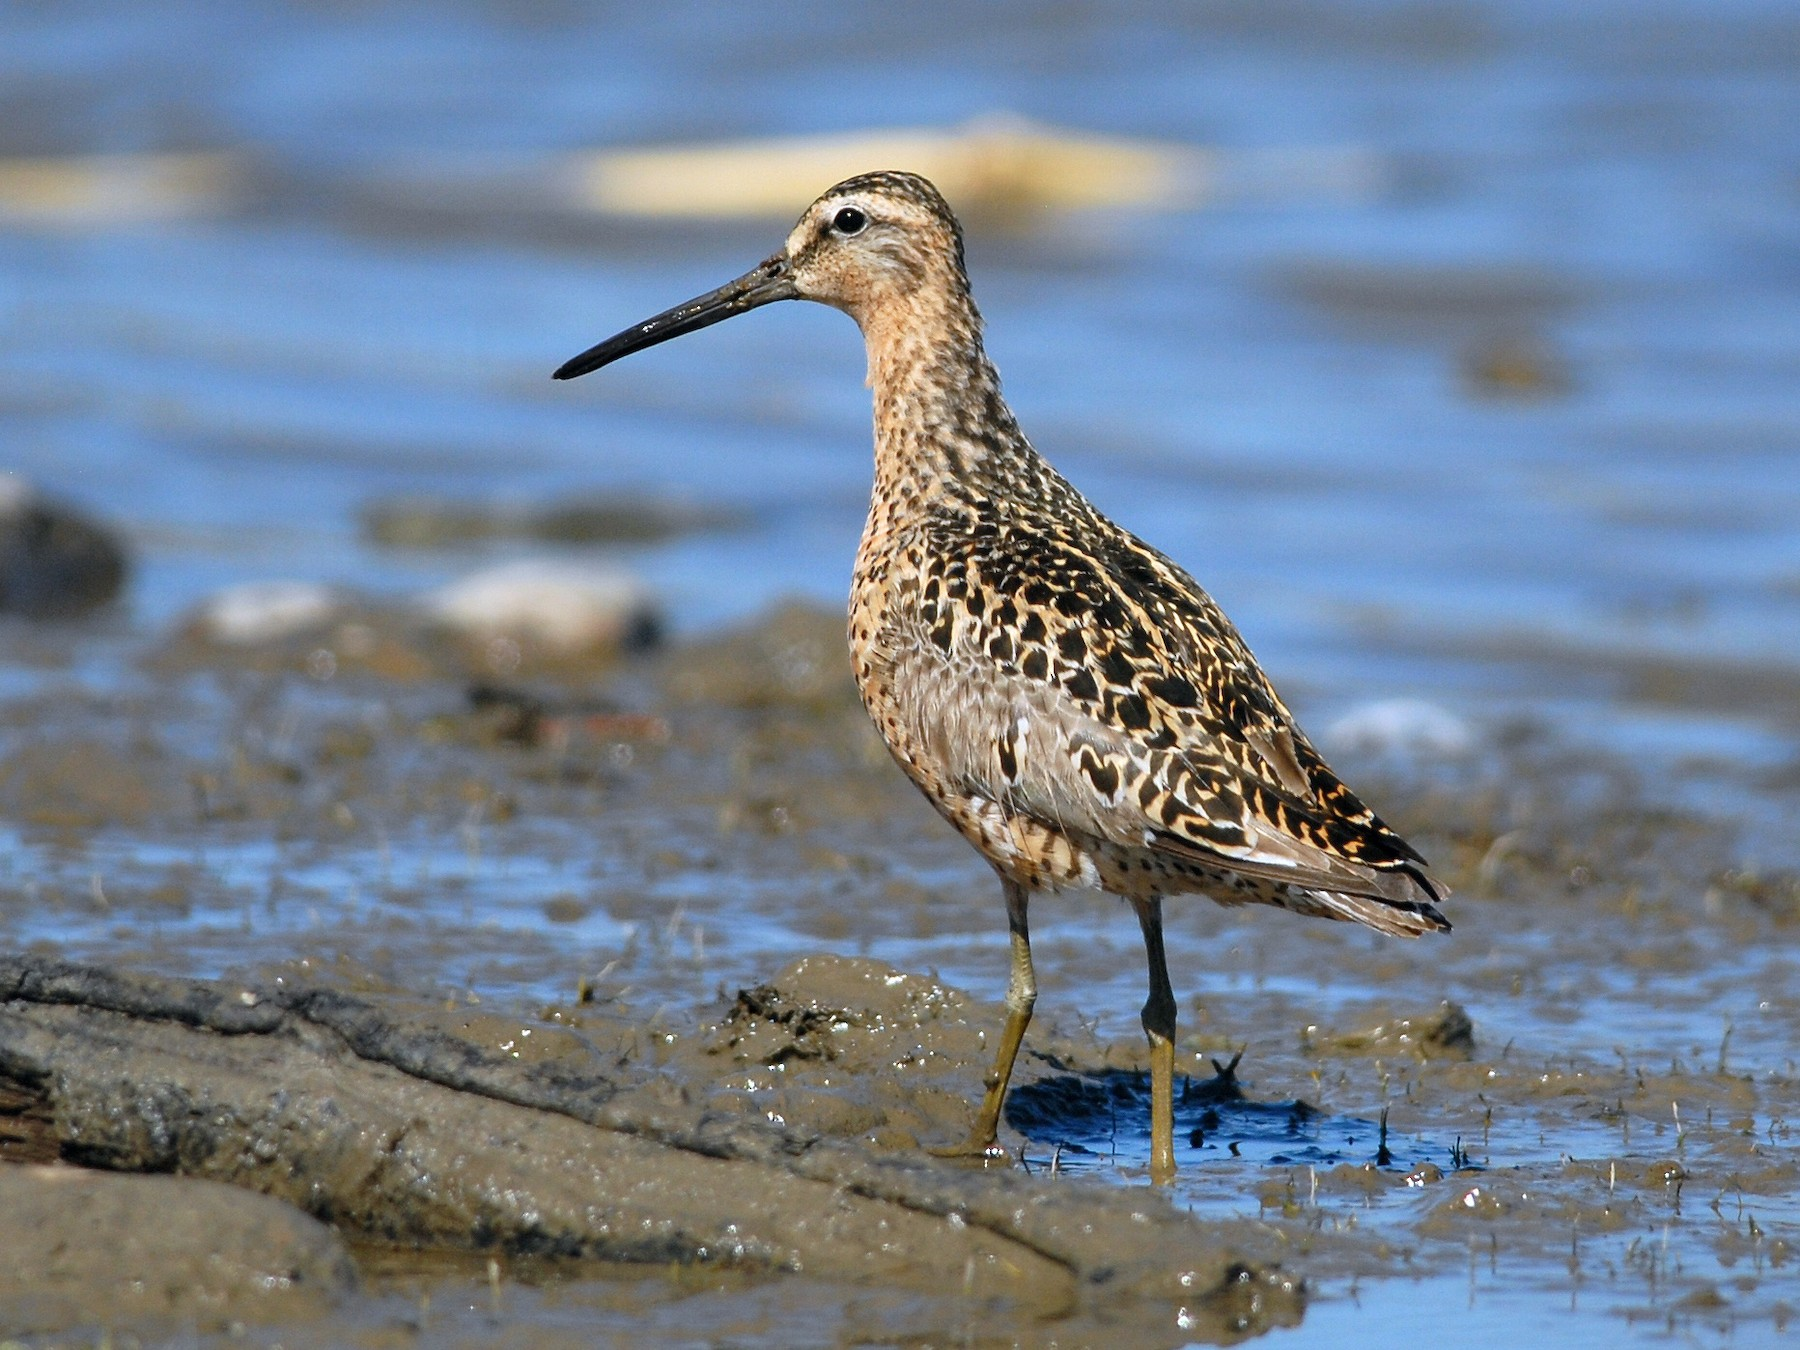 Short-billed Dowitcher - Cameron Eckert